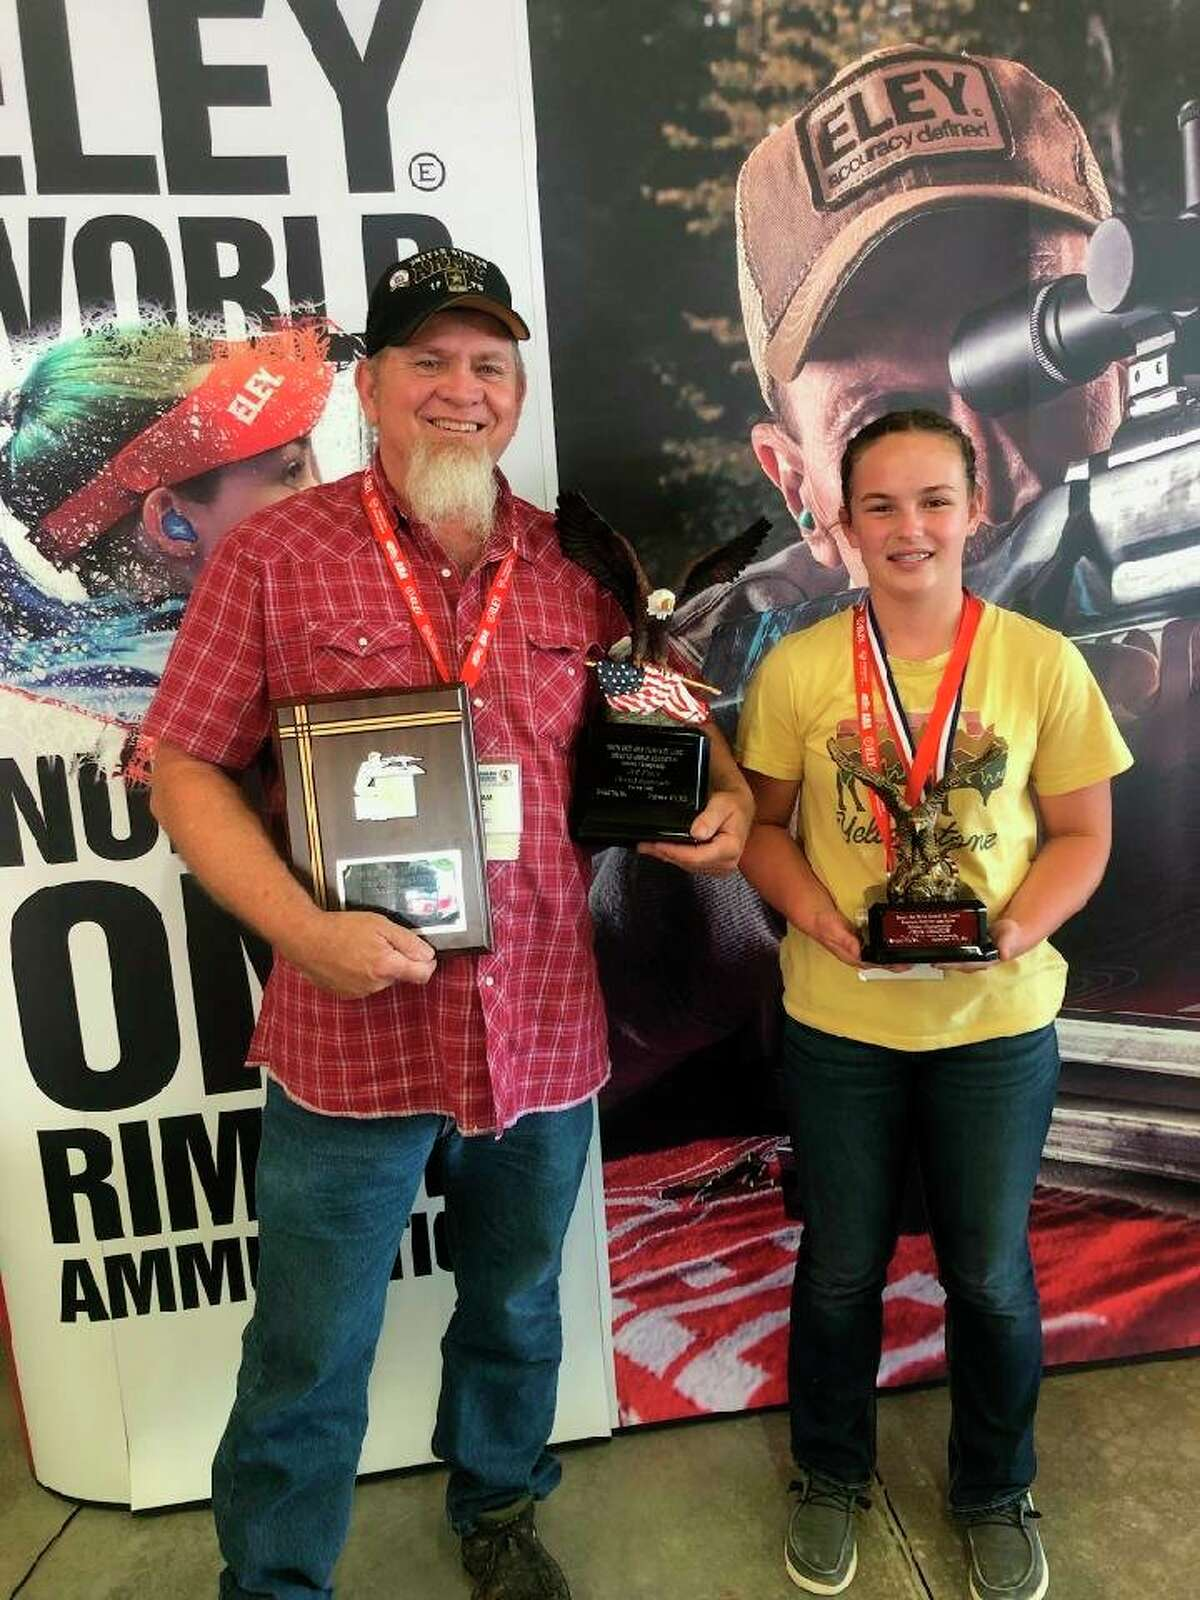 Lily Mortensen (right) and her coach Bill Litz enjoy the hardware received for a national title. (Courtesy photo)